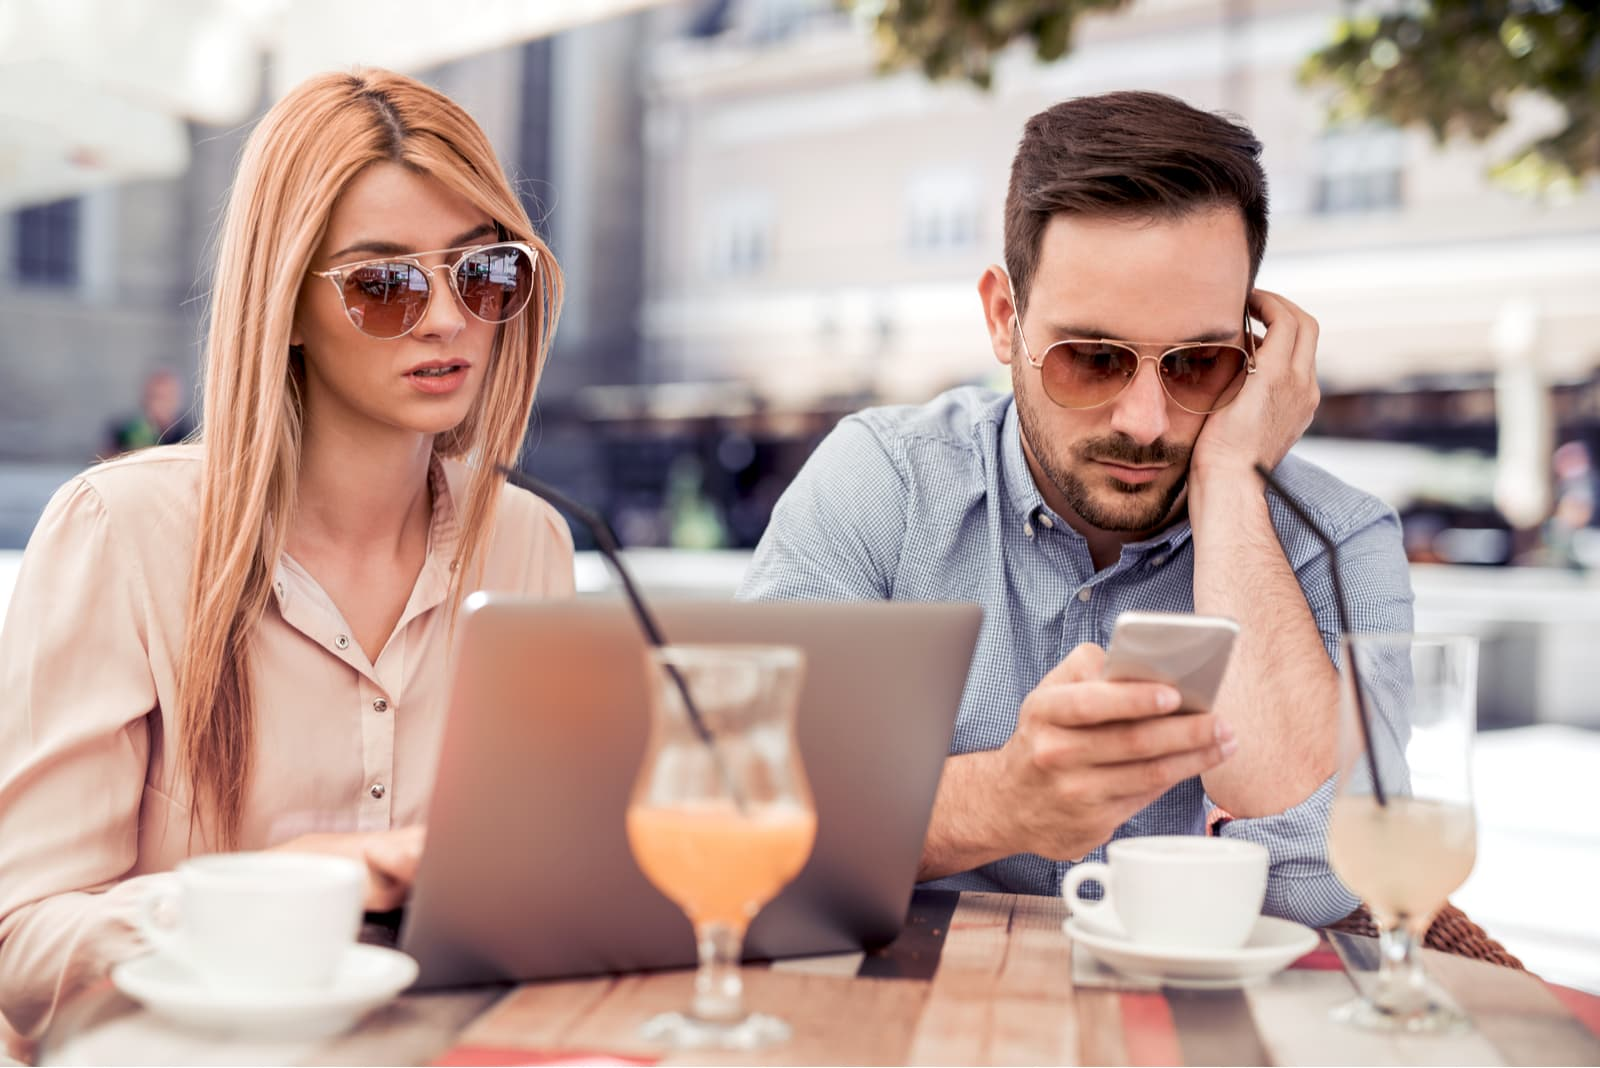 a woman and a man are sitting while he is typing on the phone